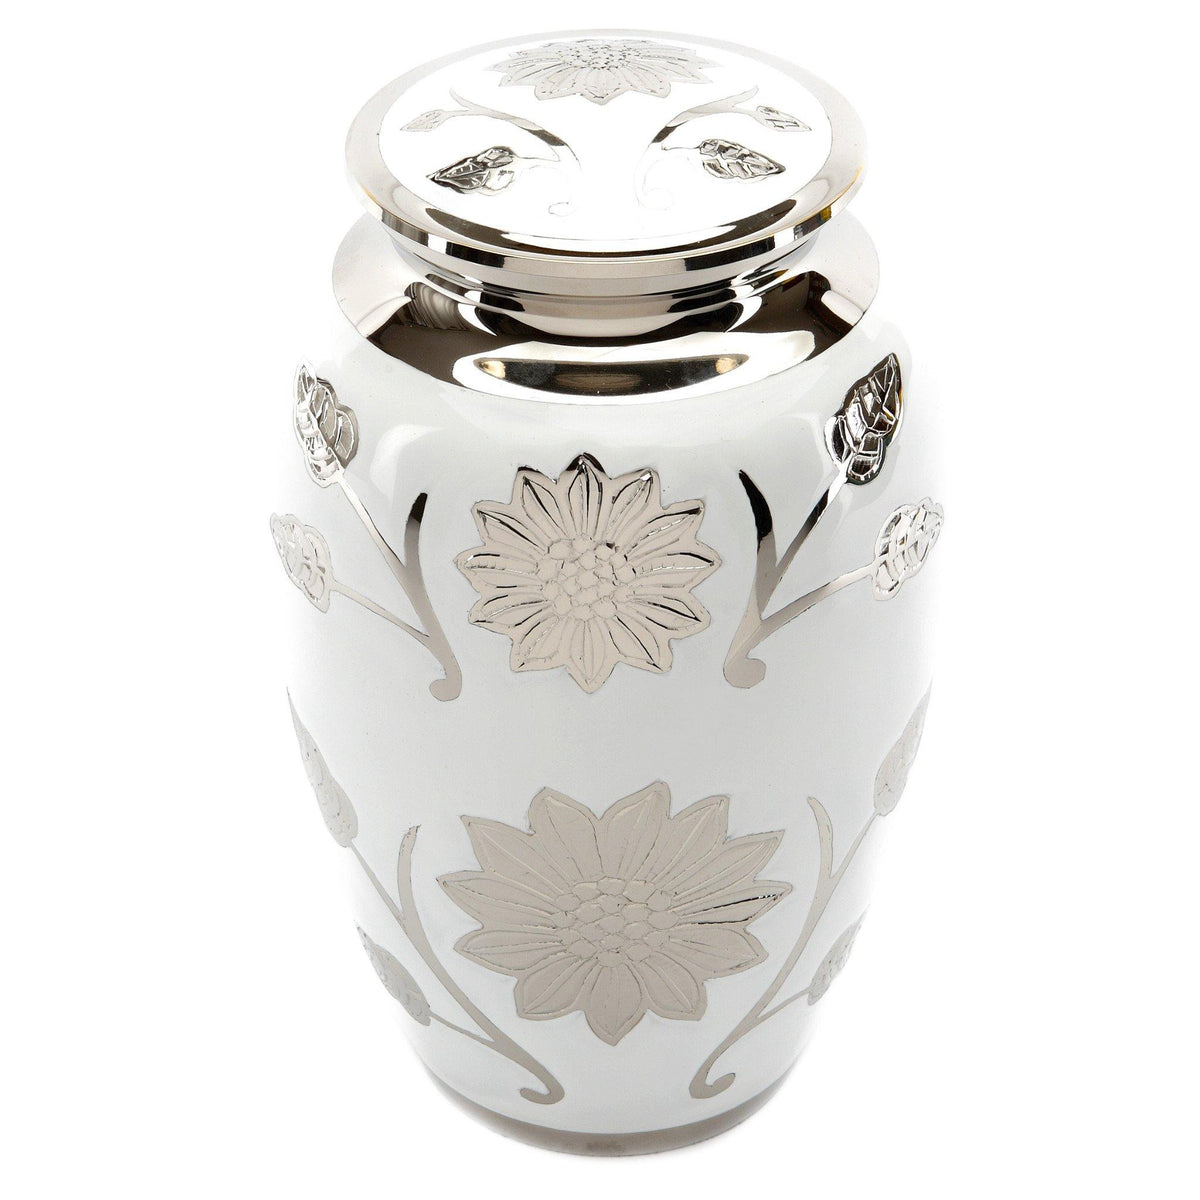 Brampton White Cremation Ashes Urn Adult - Urns UK